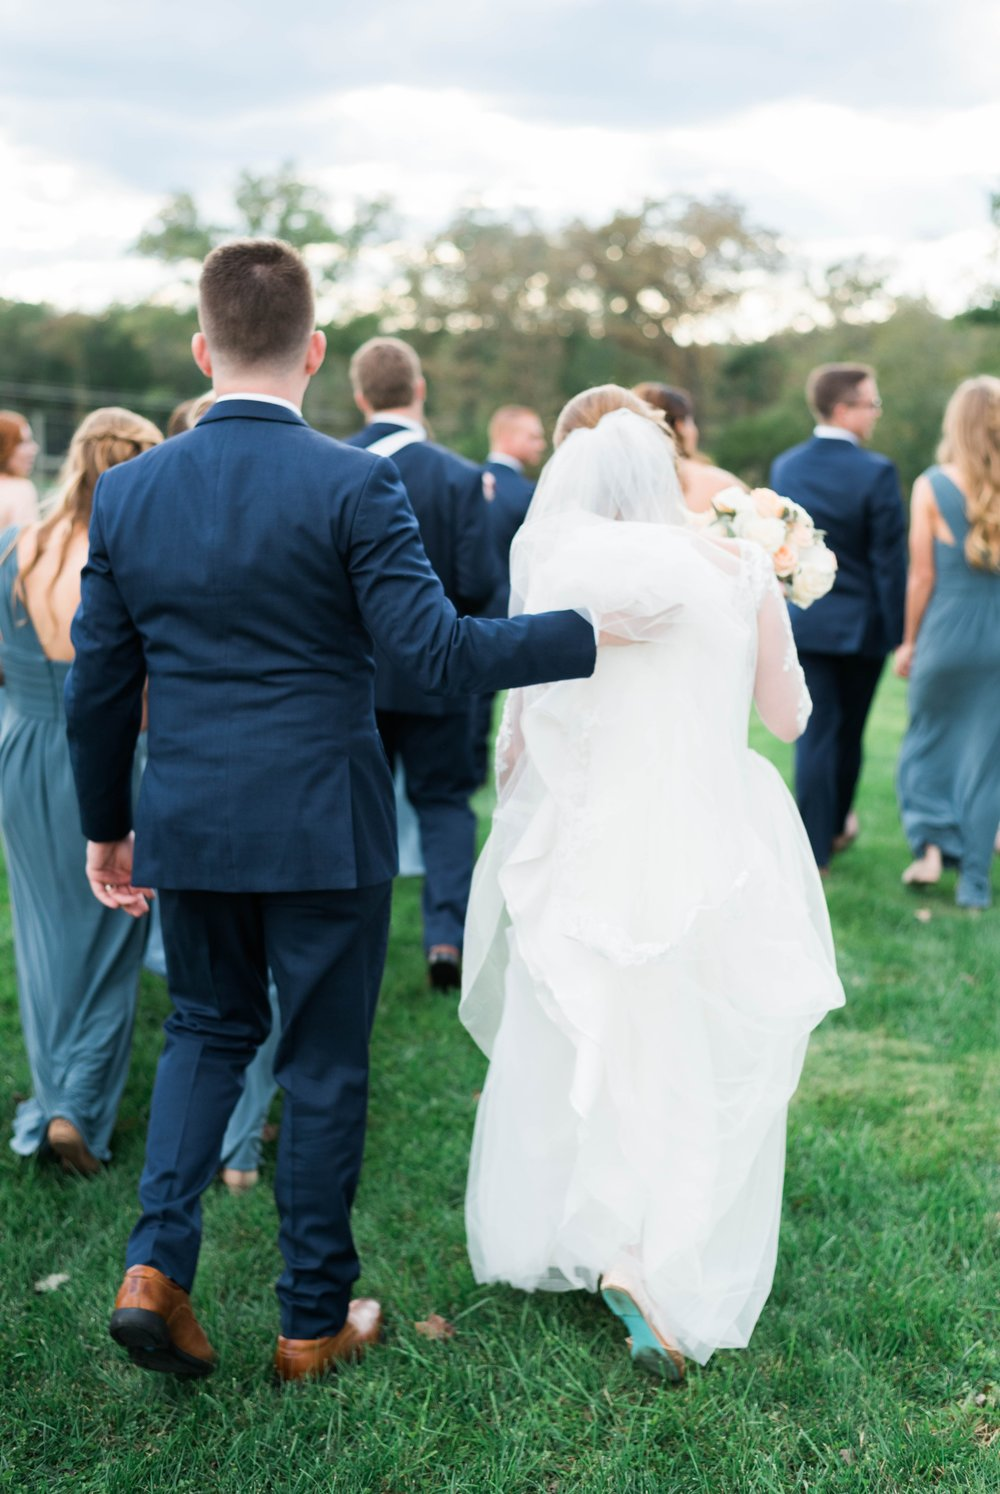 GrantElizabeth_wineryatbullrun_DCwedding_Virginiaweddingphotographer 44.jpg